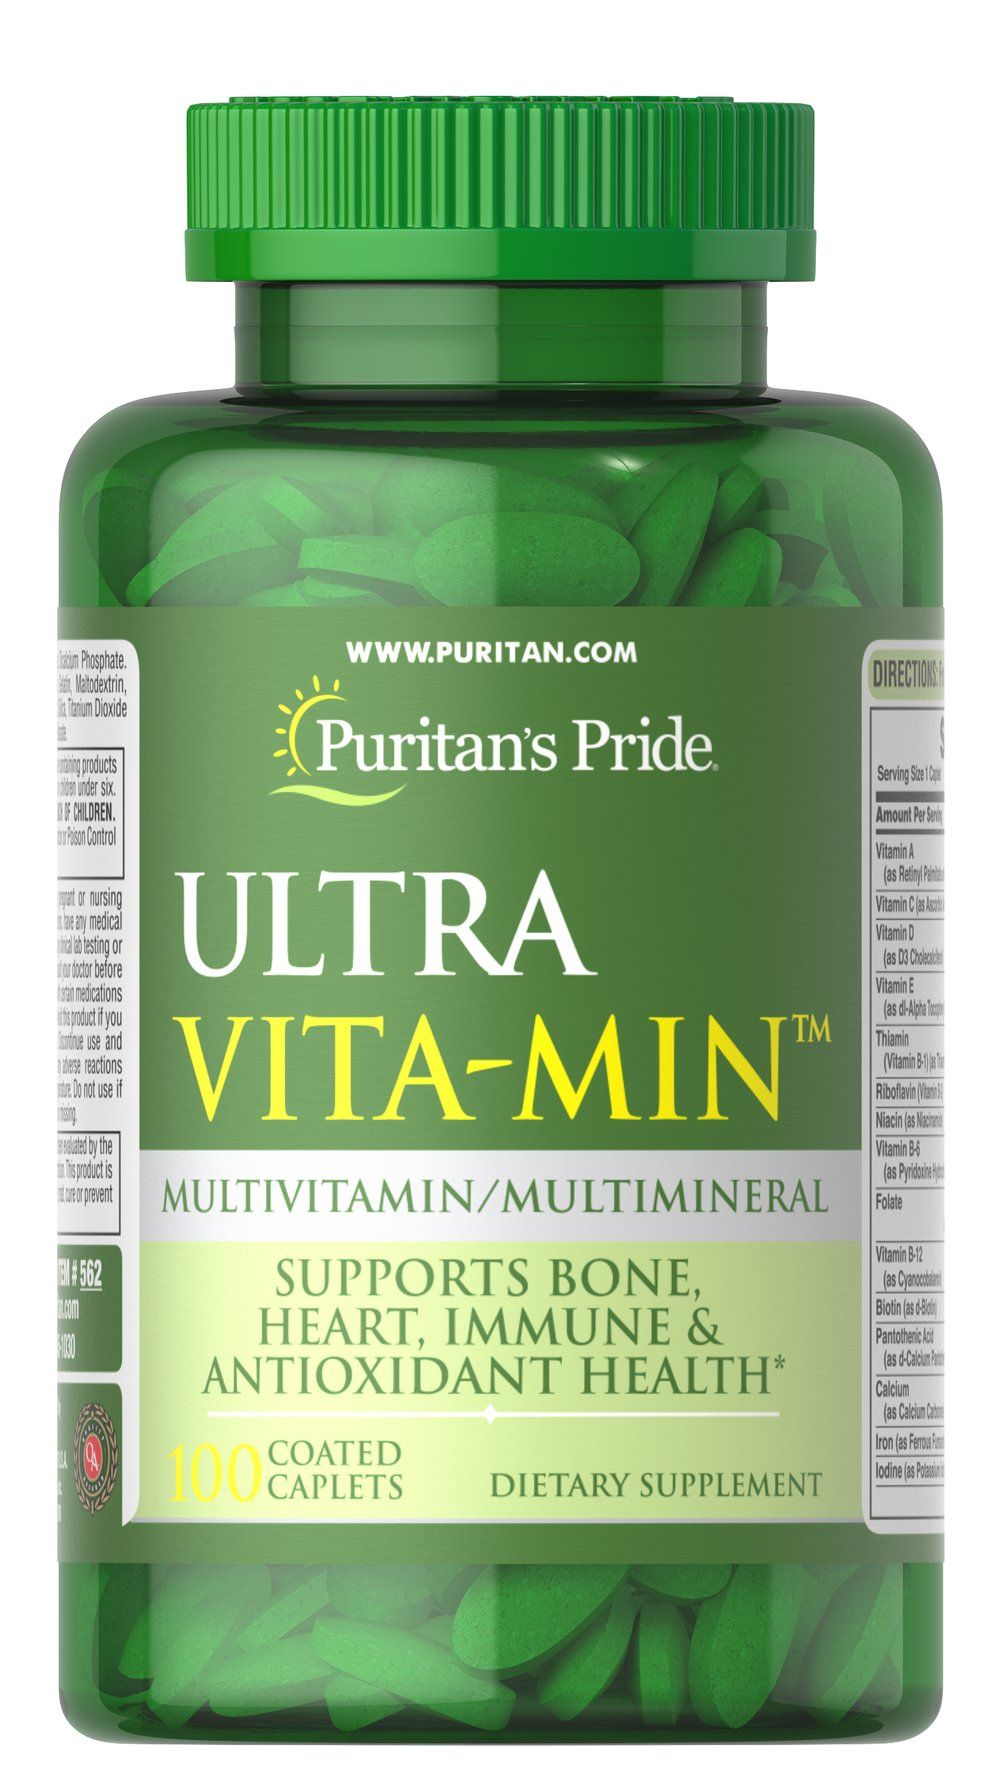 Ultra Vita-Min™ Multivitamin & Minerals VM-33 <p>A Super High Potency multivitamin ideal for men and women.  ULTRA VITA-MIN is a rich cornucopia of over 35 ingredients that help in areas of bone maintenance, energy metabolism, immune system support, and antioxidant health.**</p> 100 Caplets  $15.99